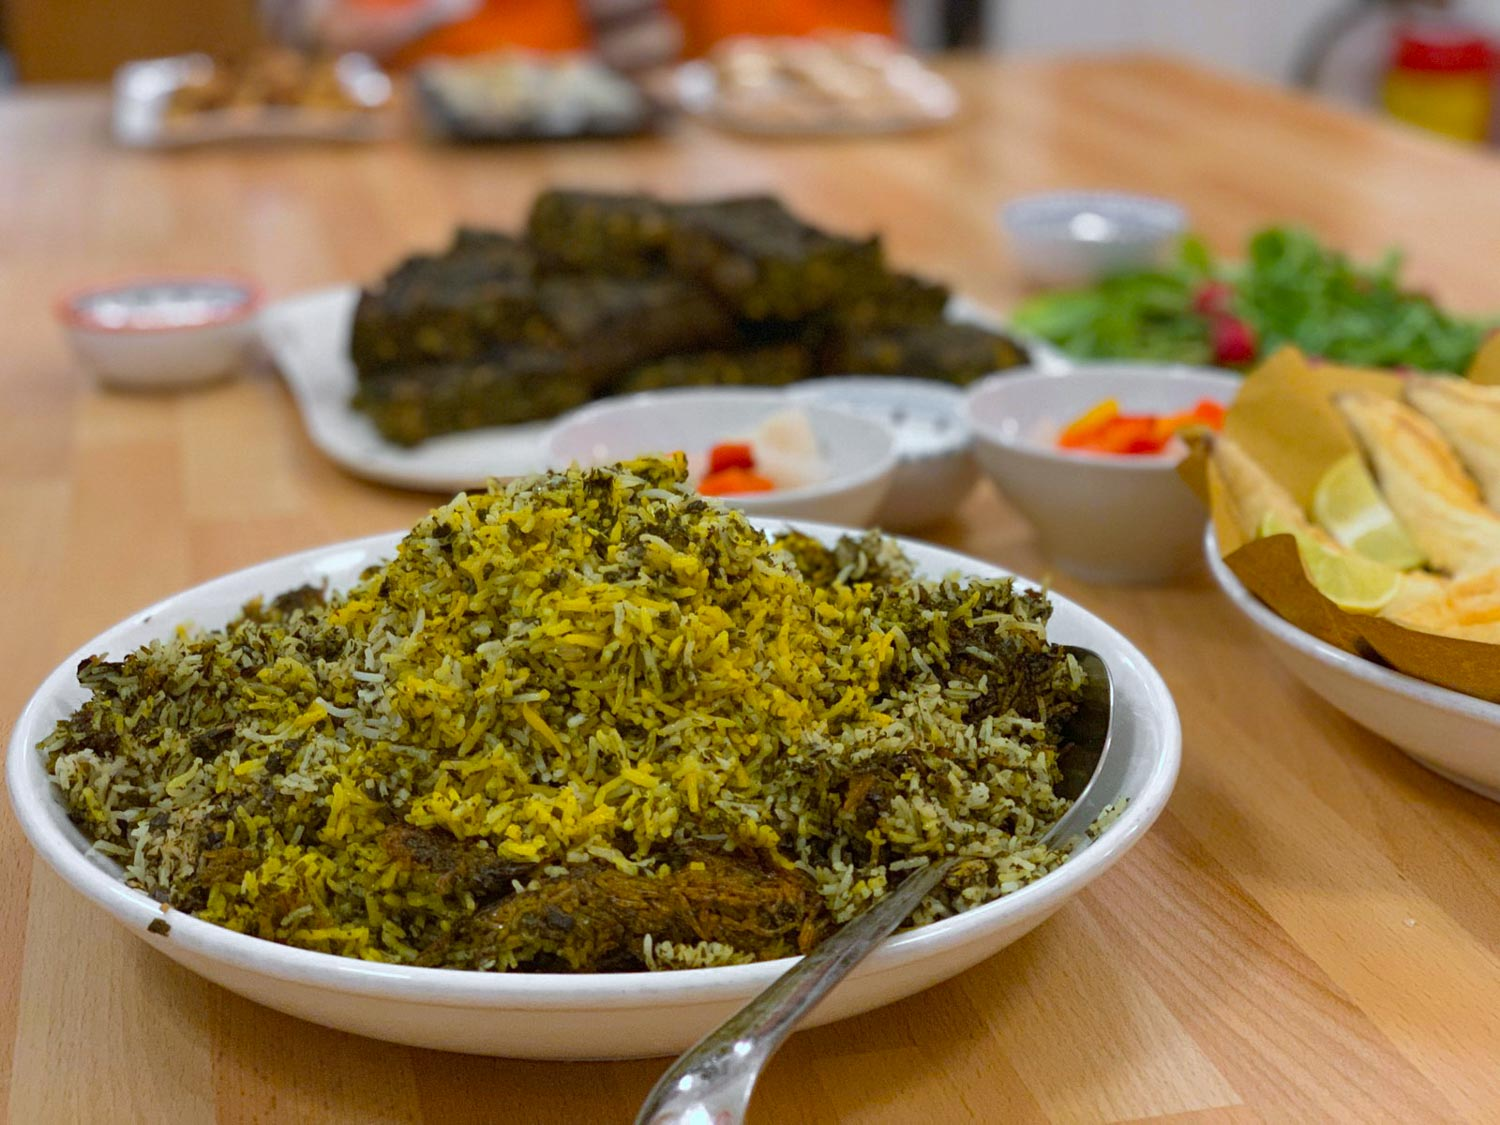 Sabzi polo a traditional Nowruz food rice dish in a white bowl on a table with other food.